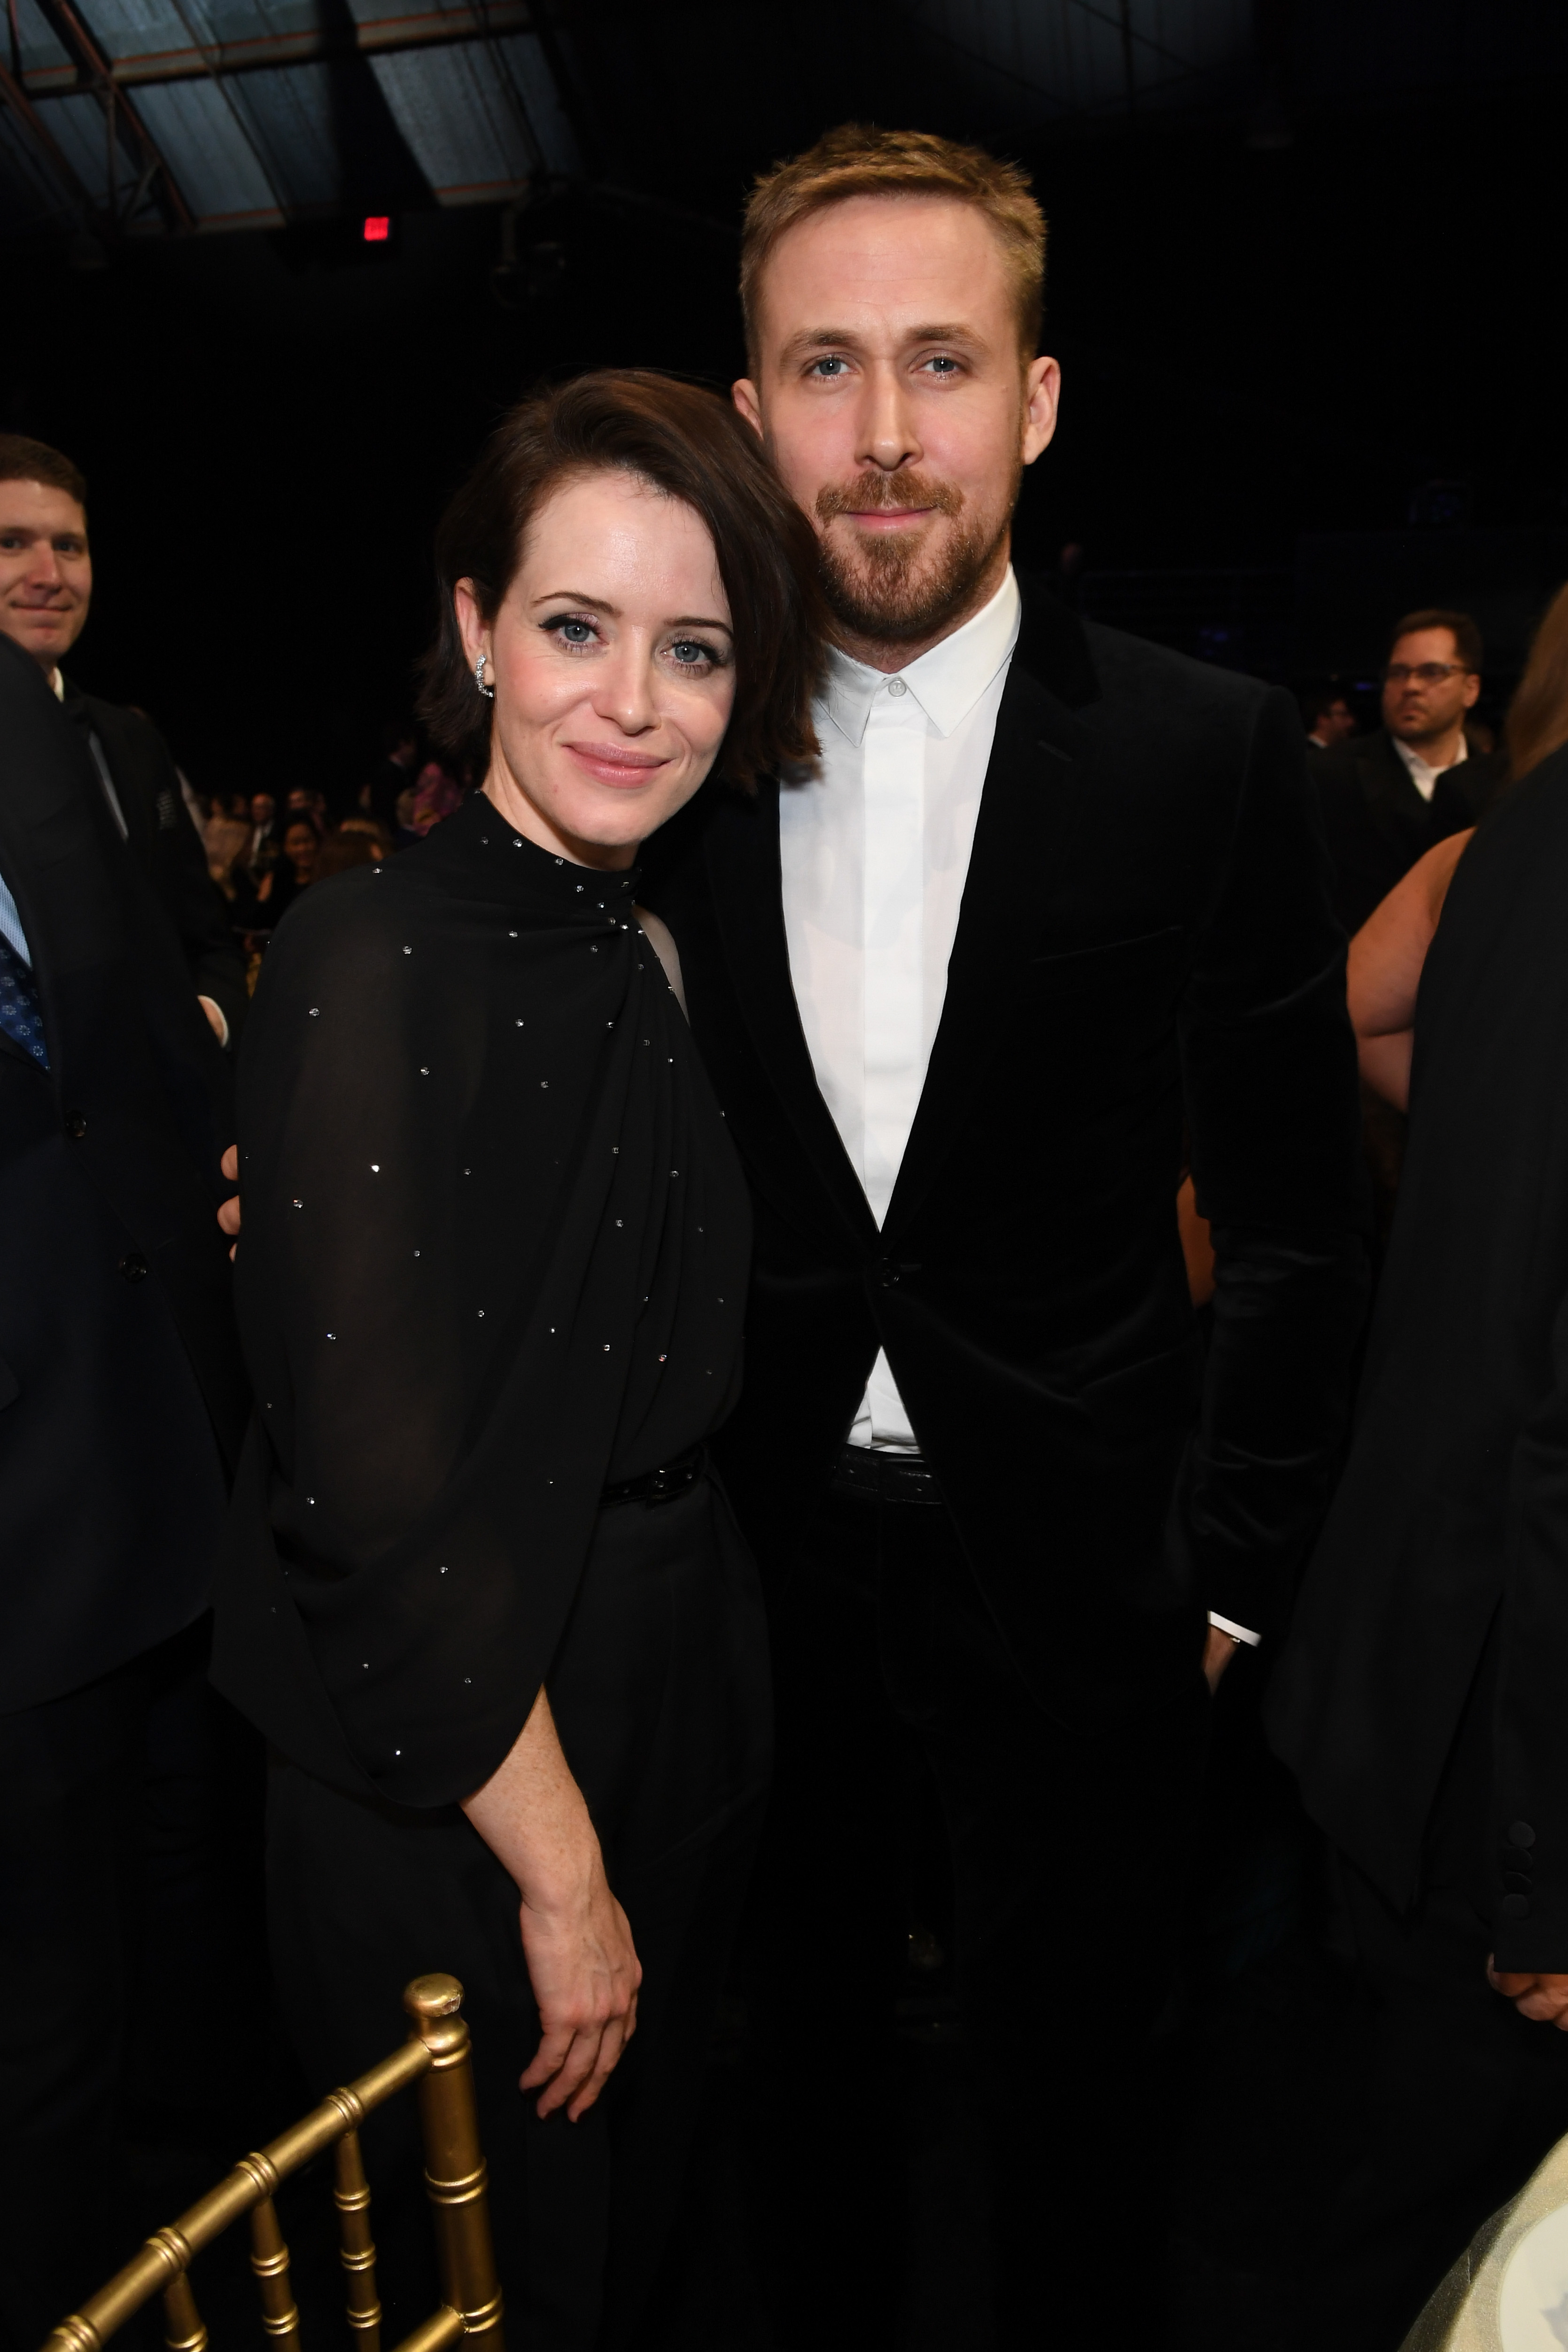 Claire Foy and Ryan Gosling attend the 24th Annual Critics' Choice Awards at Barker Hangar in Santa Monica, California, on Jan. 13, 2019.